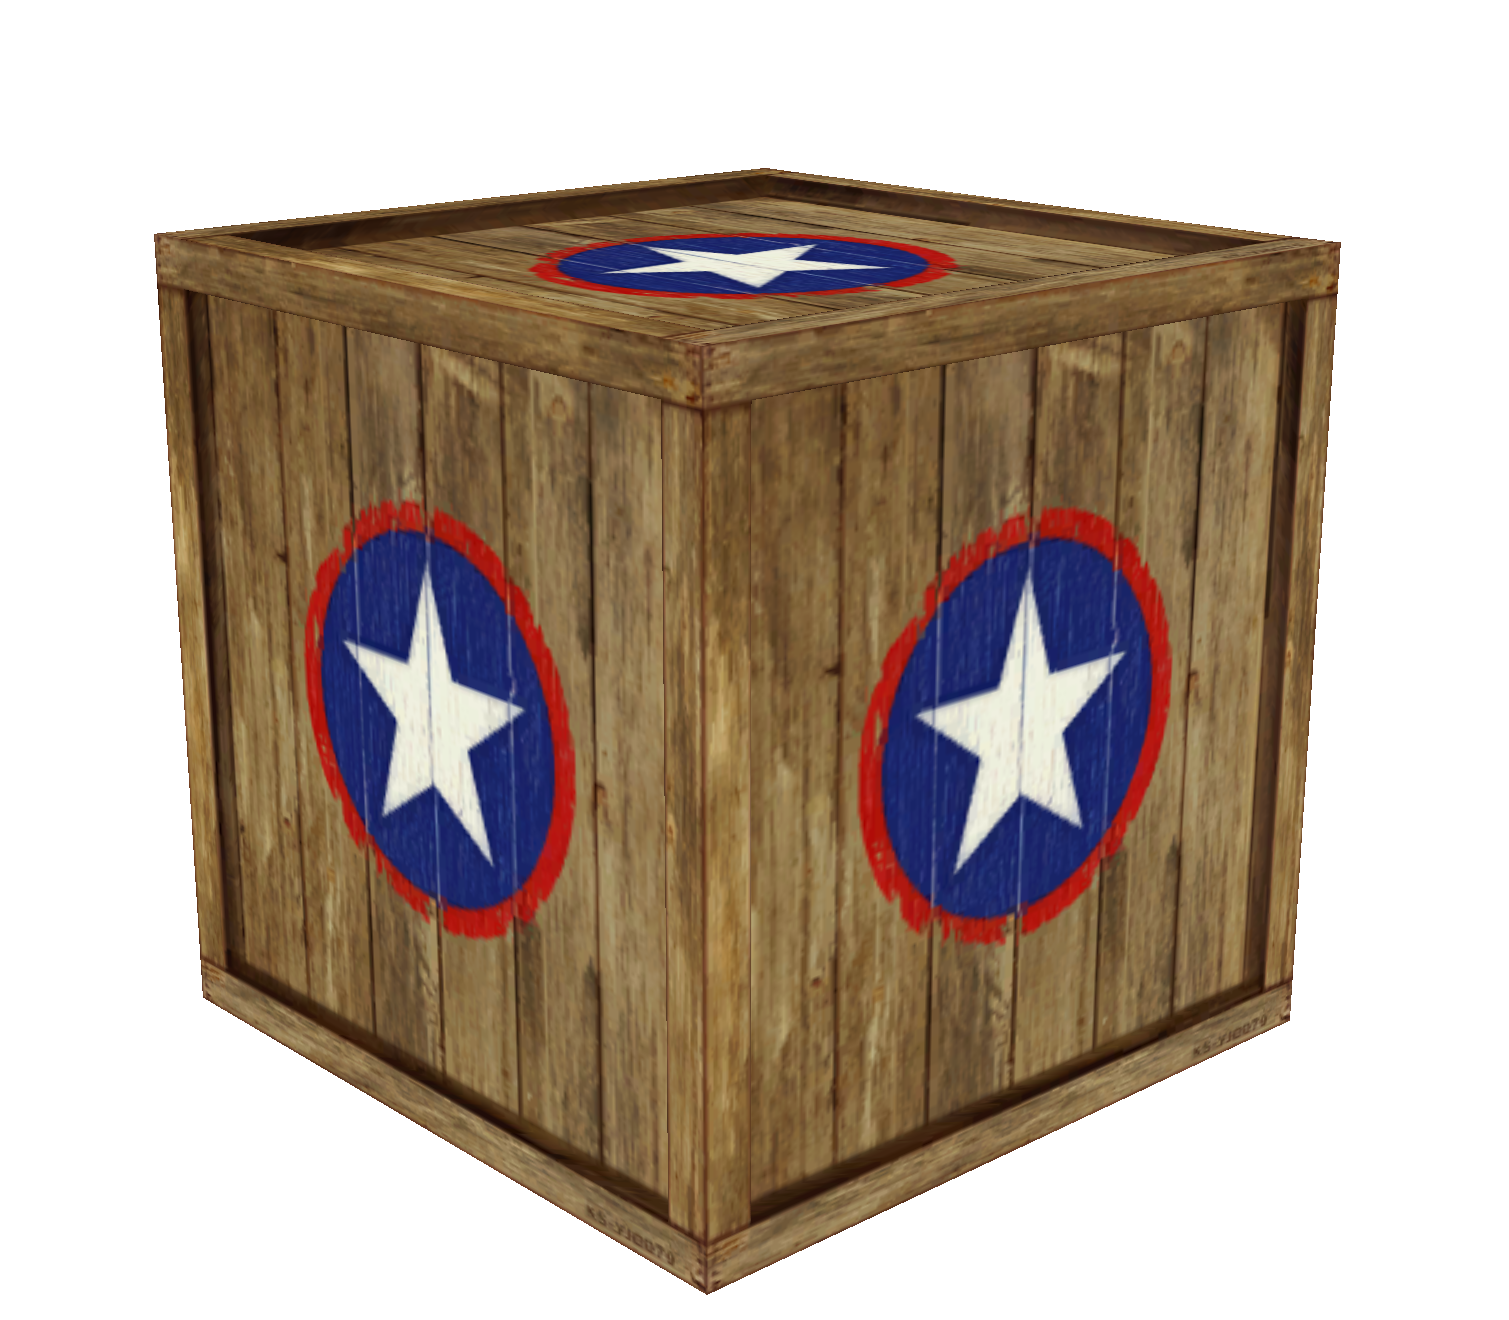 Wood box png. Image sonic news network